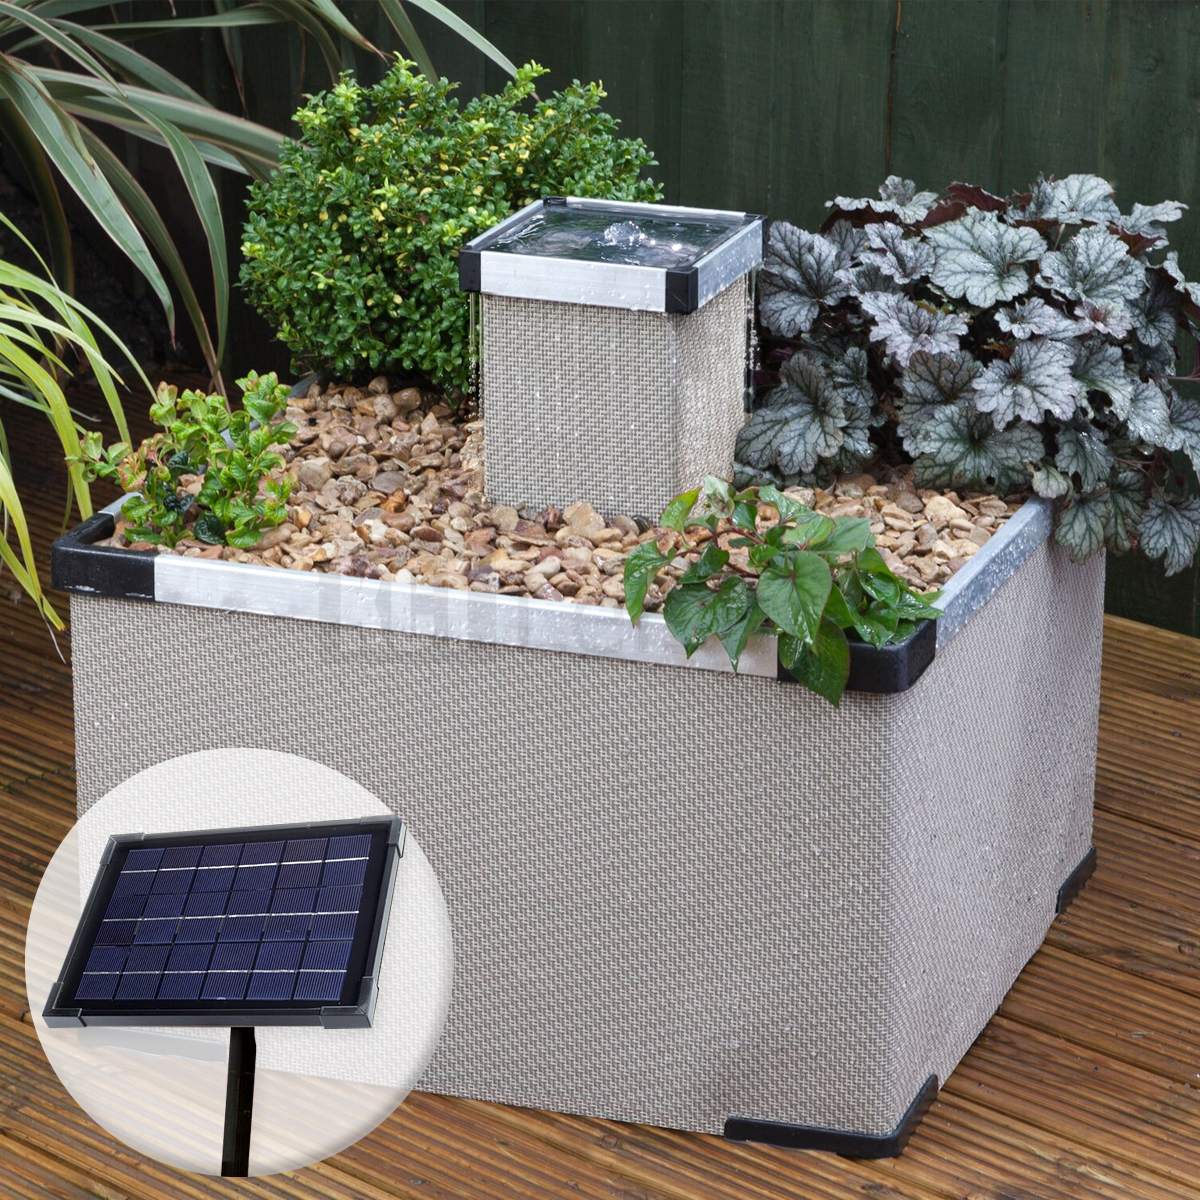 Blagdon Sand Liberty Planter Amp 5w Solar Panel Water